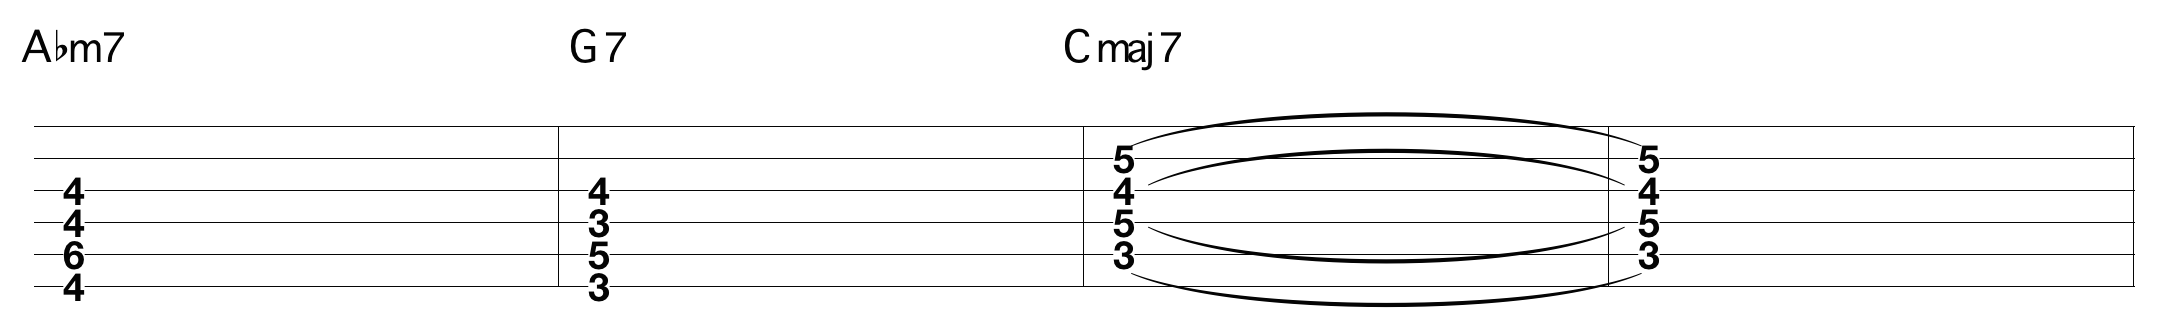 online-jazz-guitar-lessons_4.png